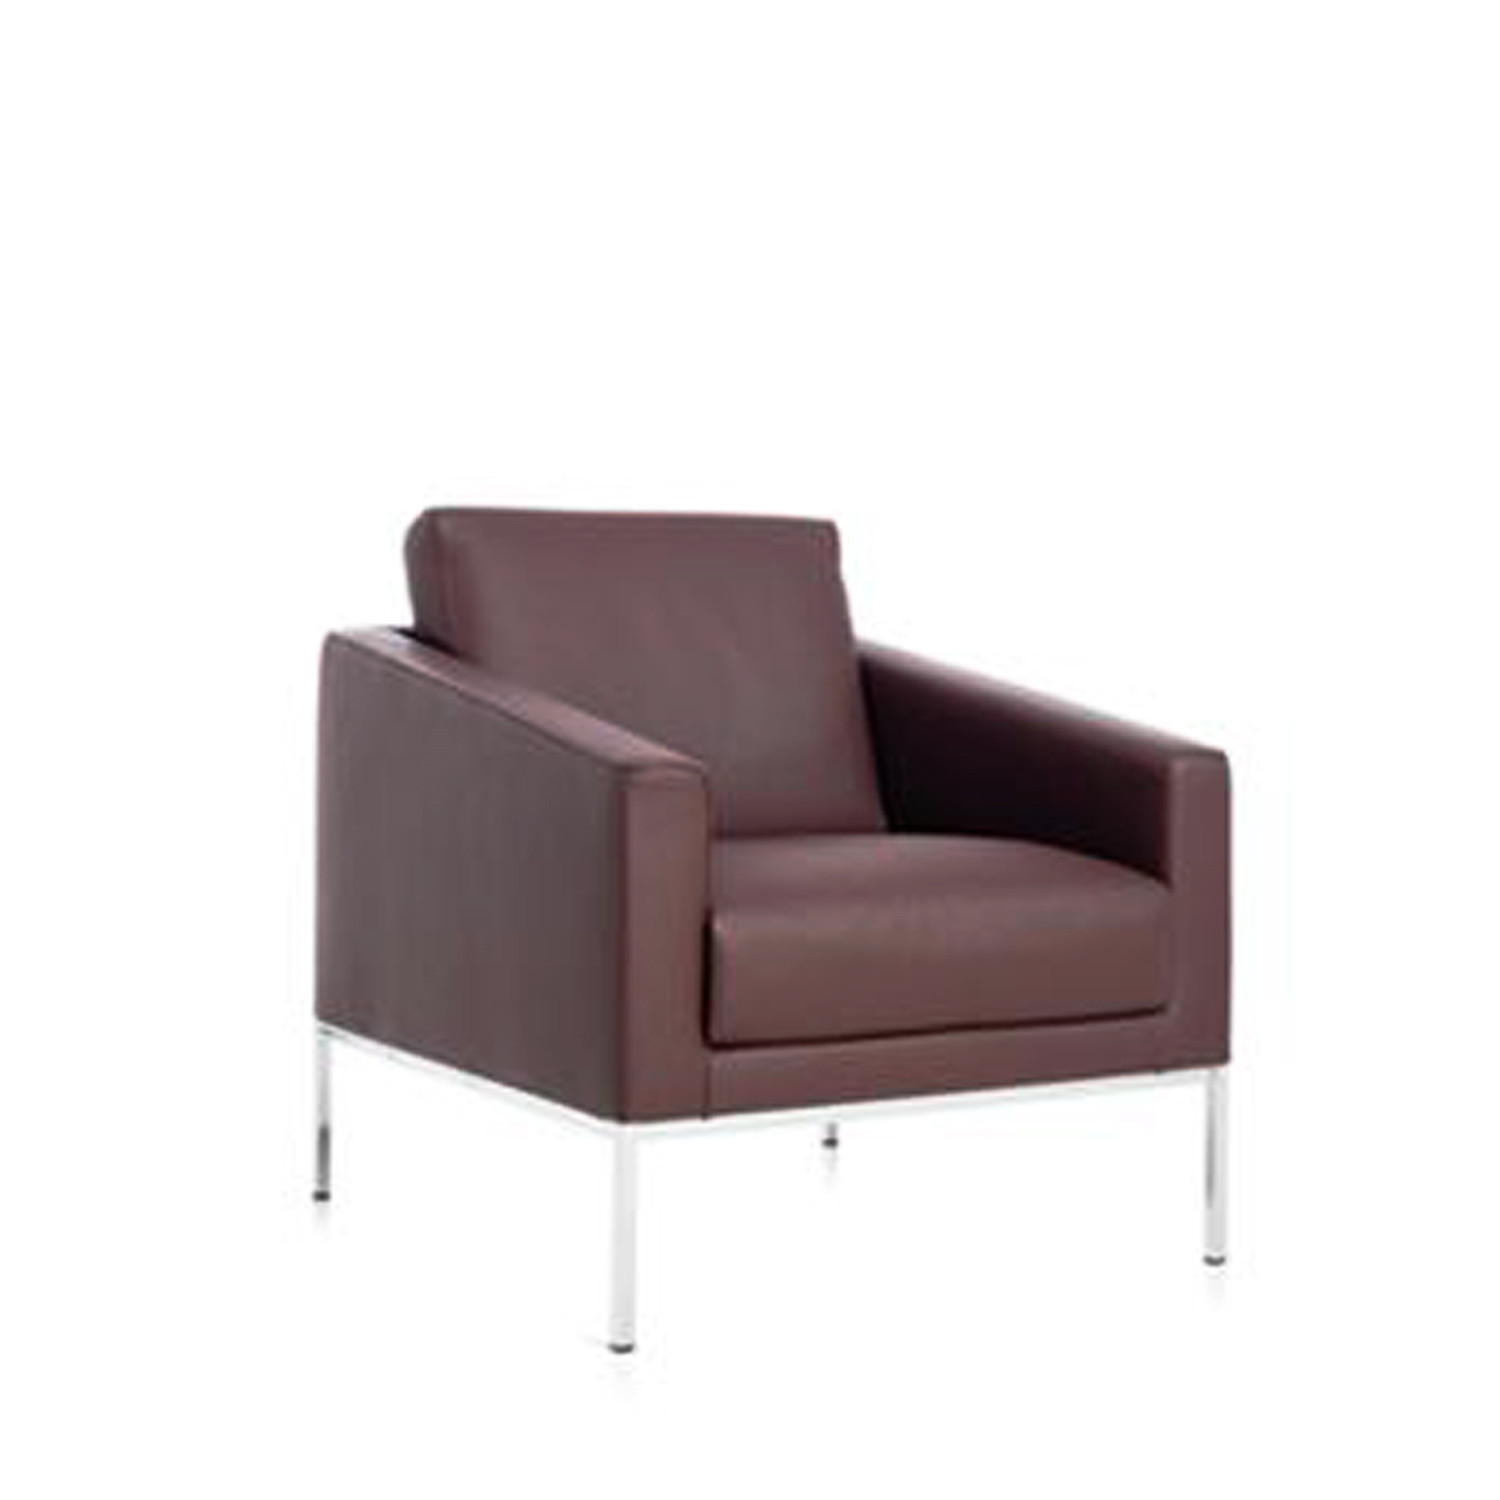 Madison Armchair by ICF Spa